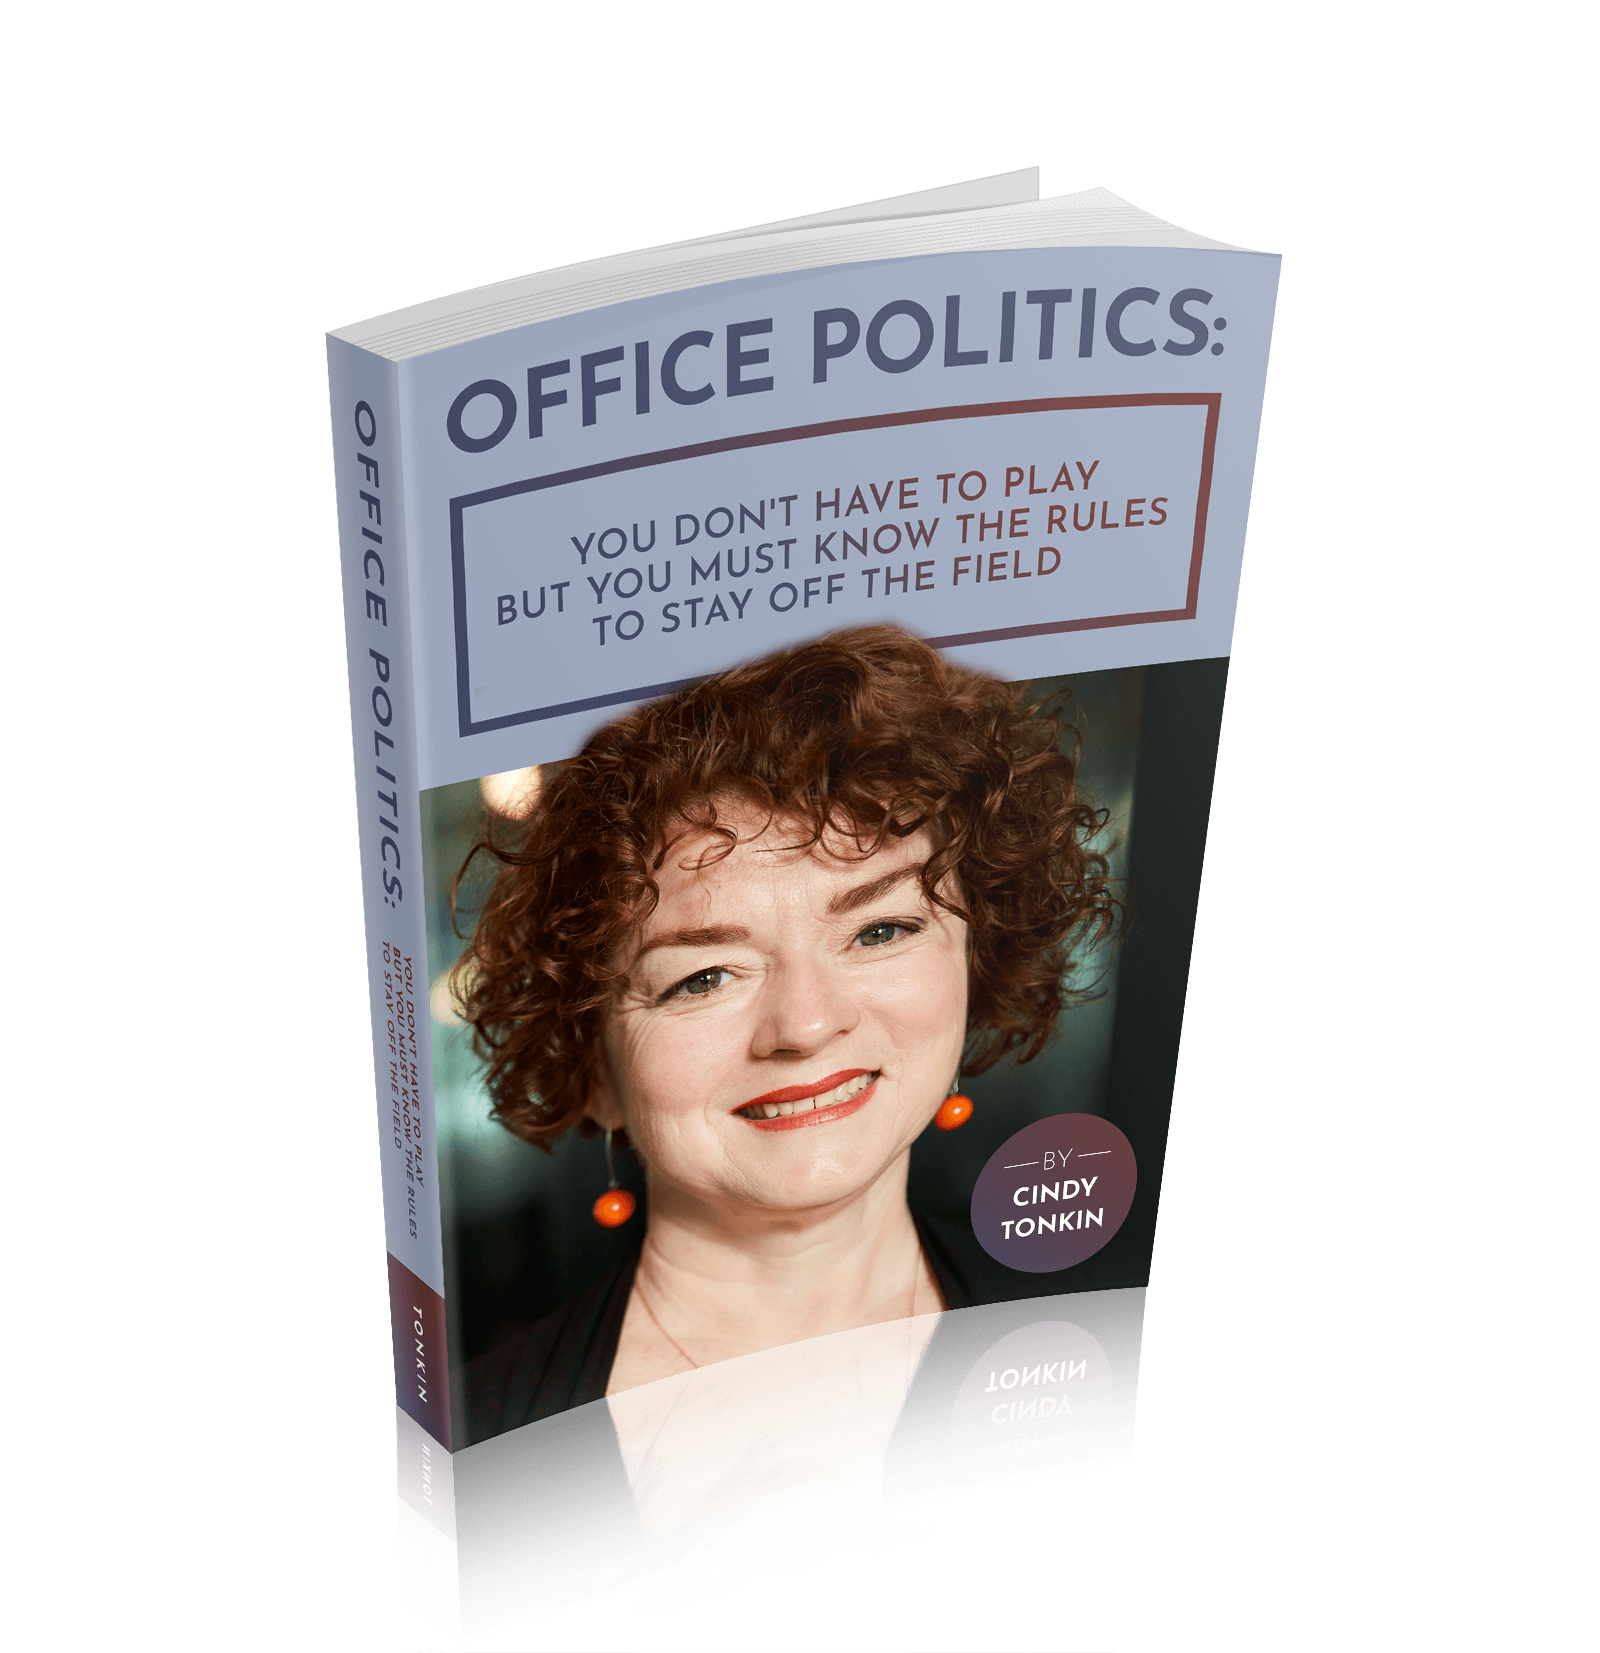 Learn more political acumen: cindy tonkin Office Politics cover